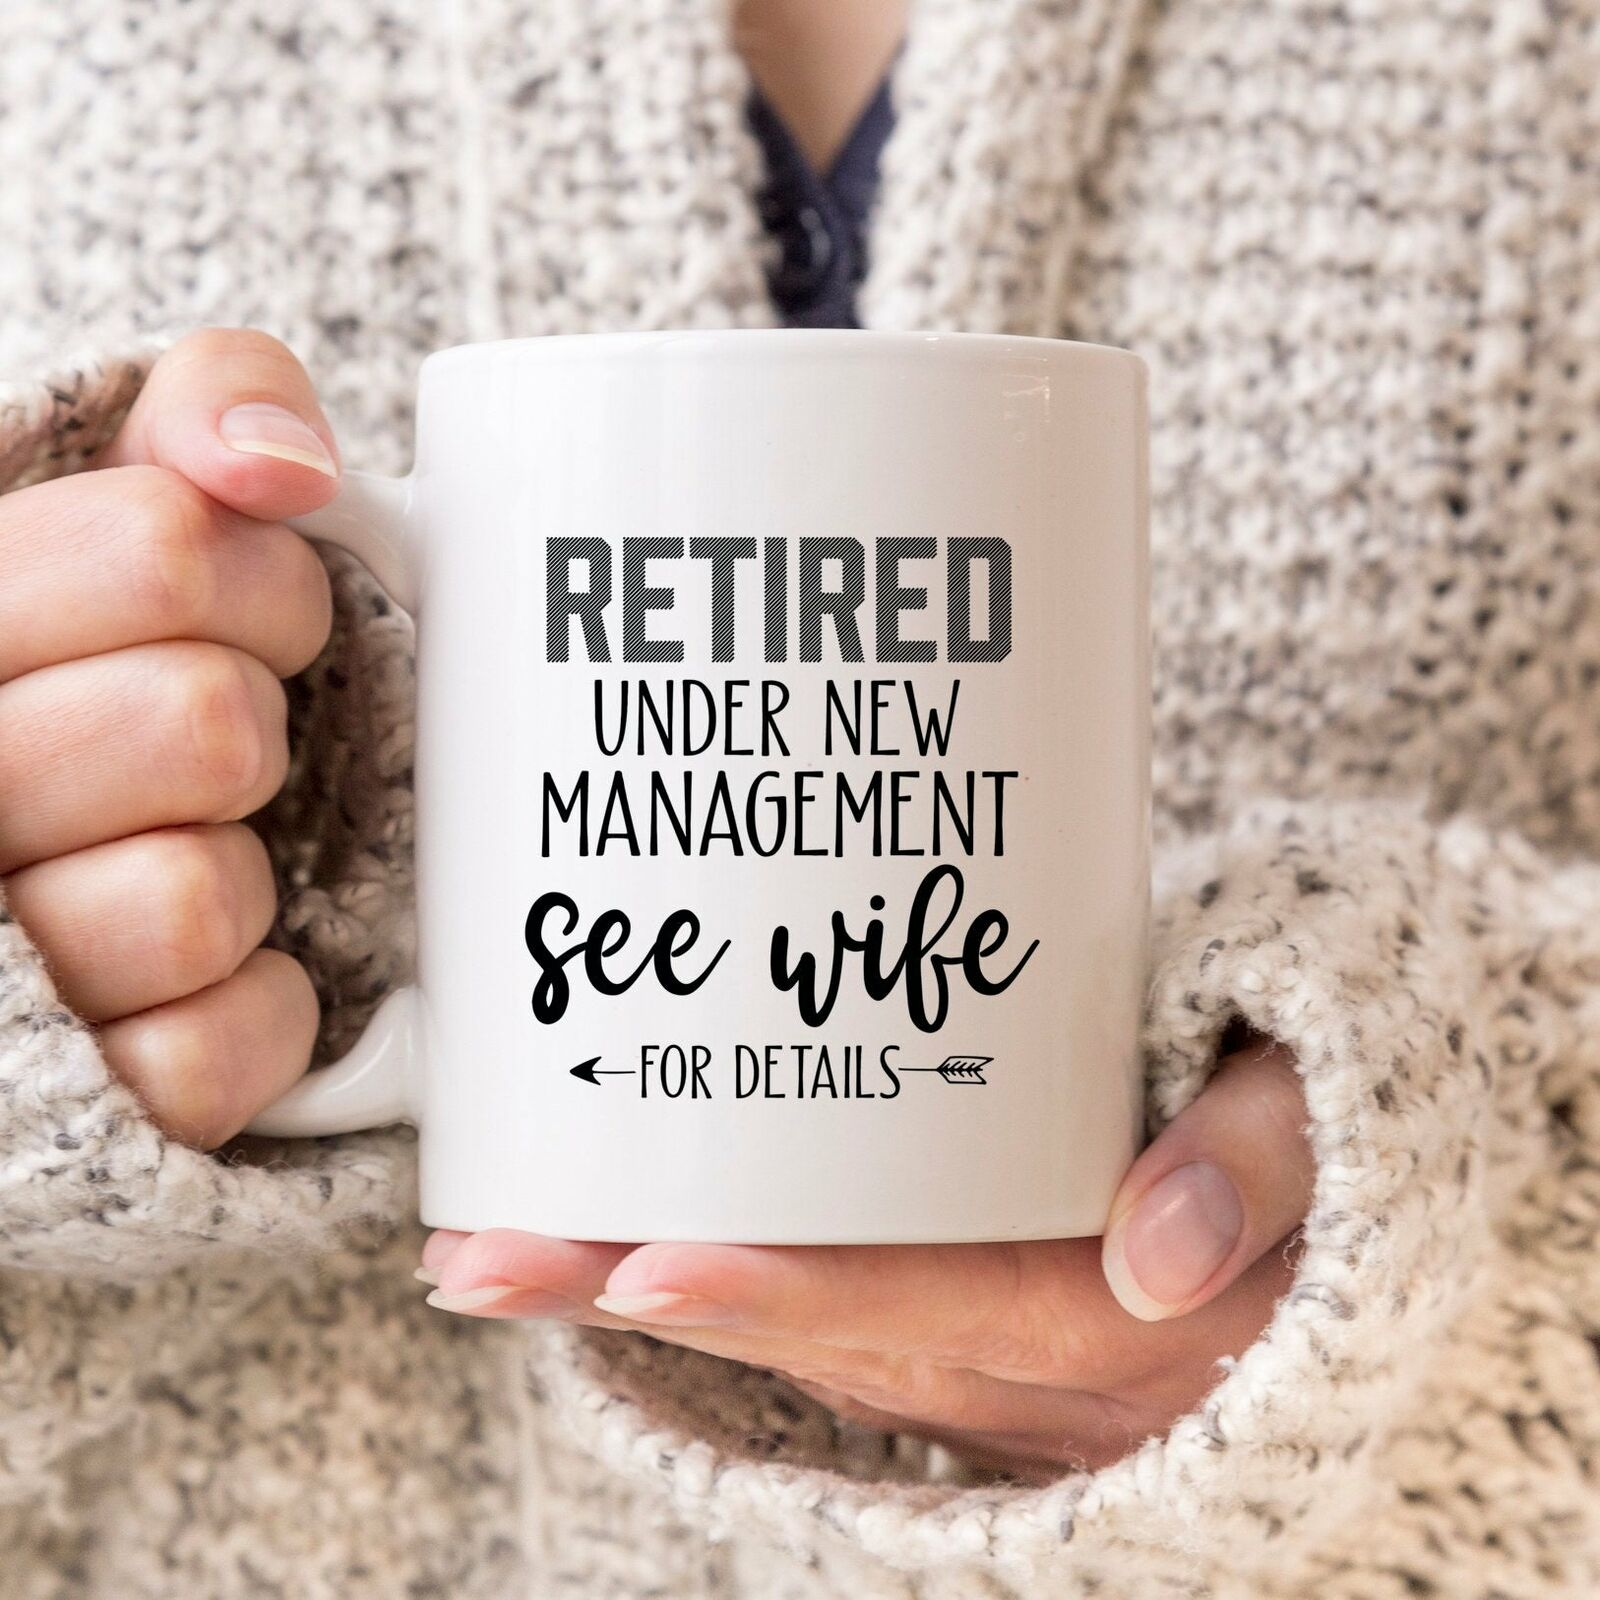 Retired Under New Management Mug See Wife For Details Retire